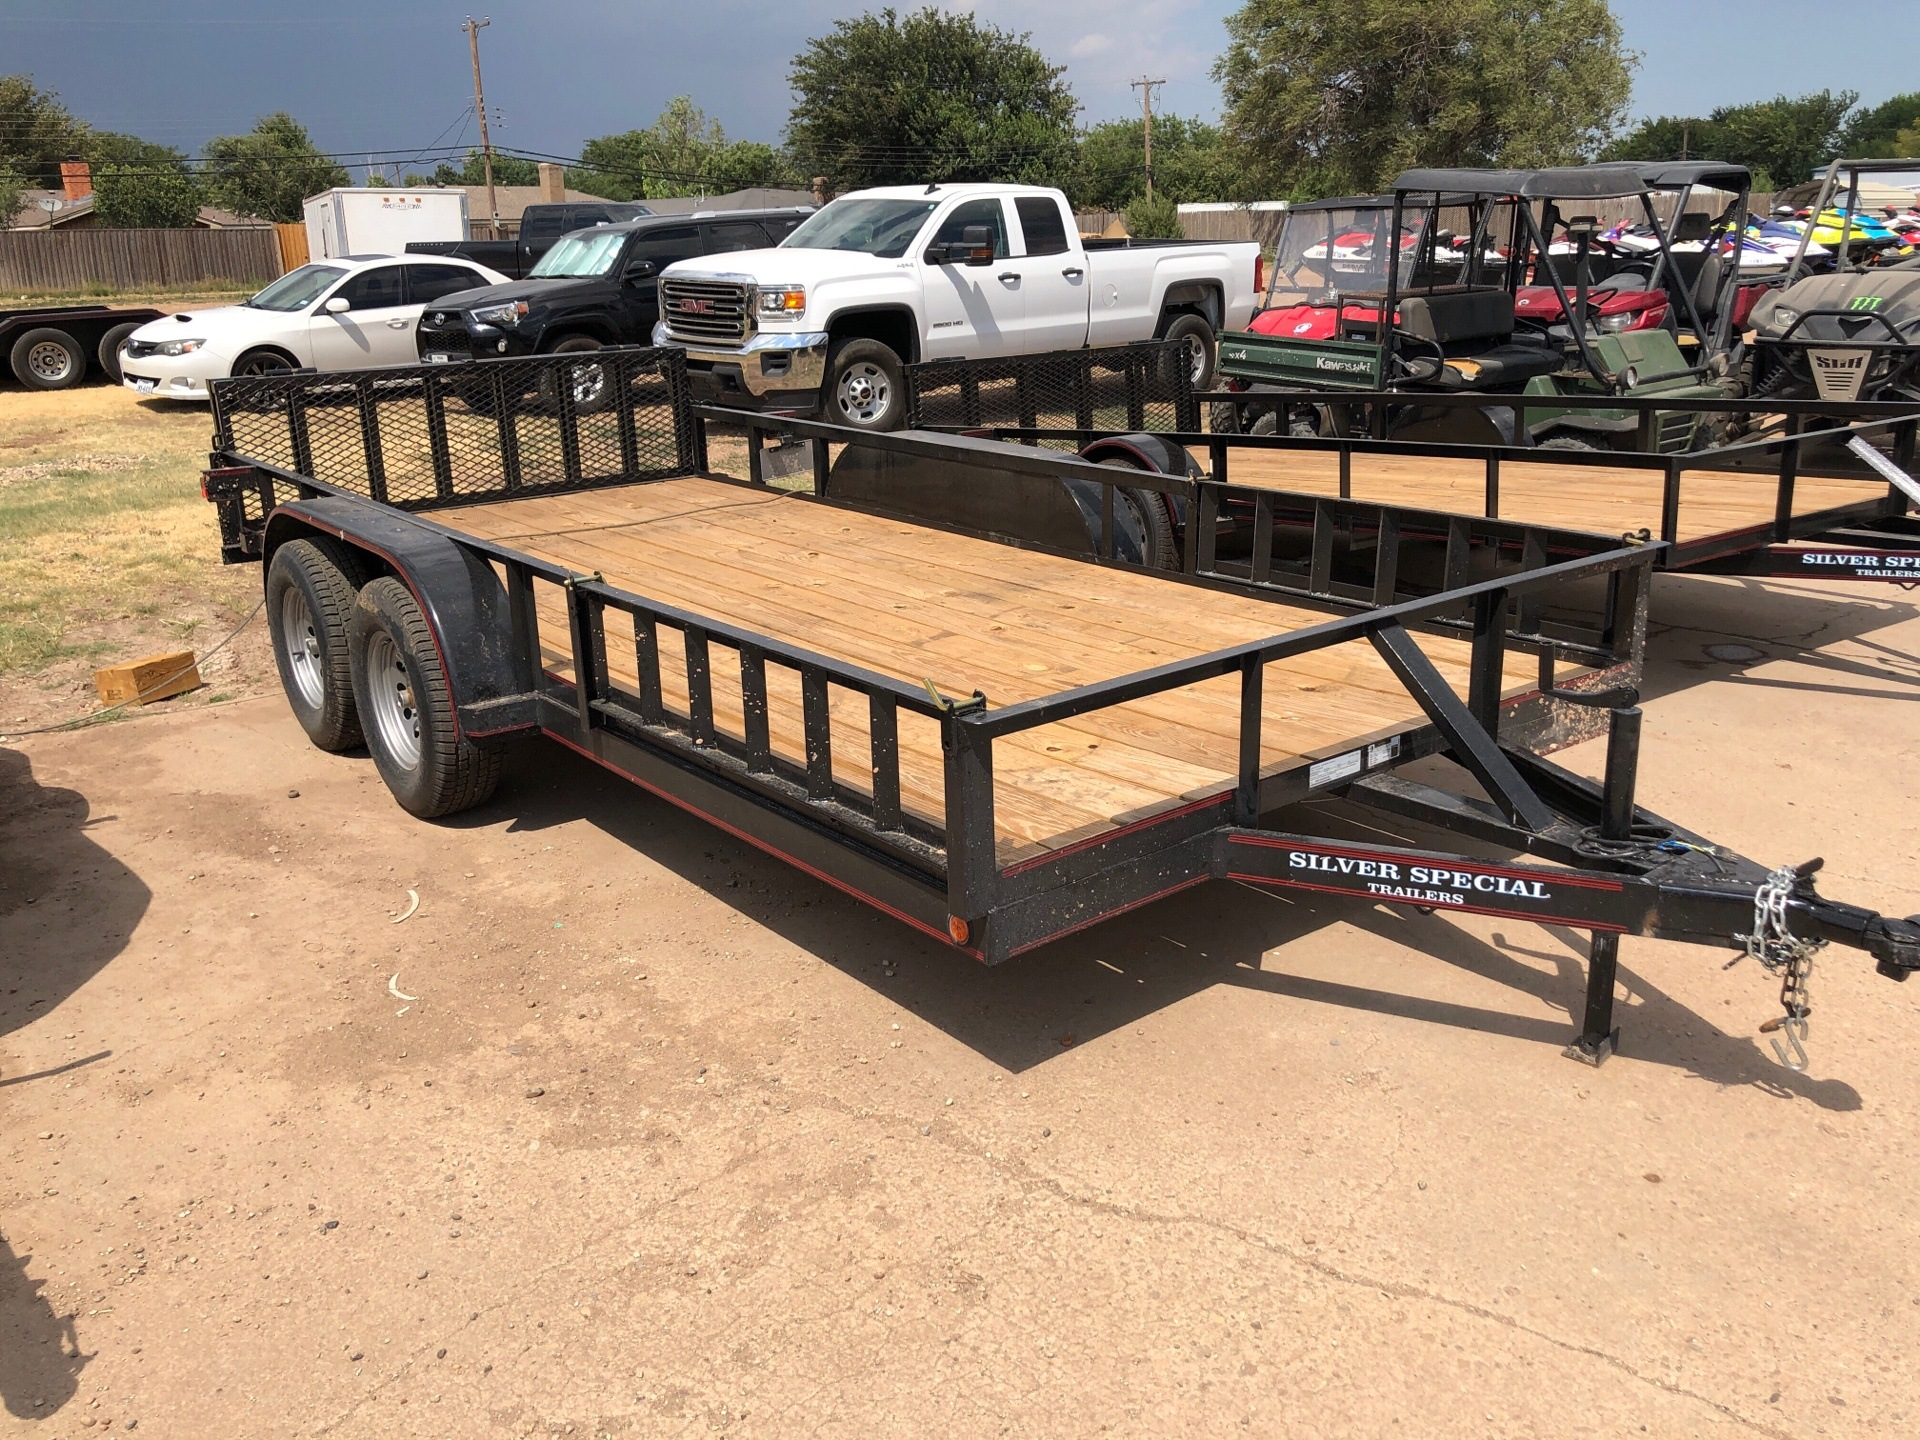 "2019 Silver Special Trailers LLC 16X83 Tandem w/ Electric Brake/ 48"" Bi-fold Gate in Amarillo, Texas"